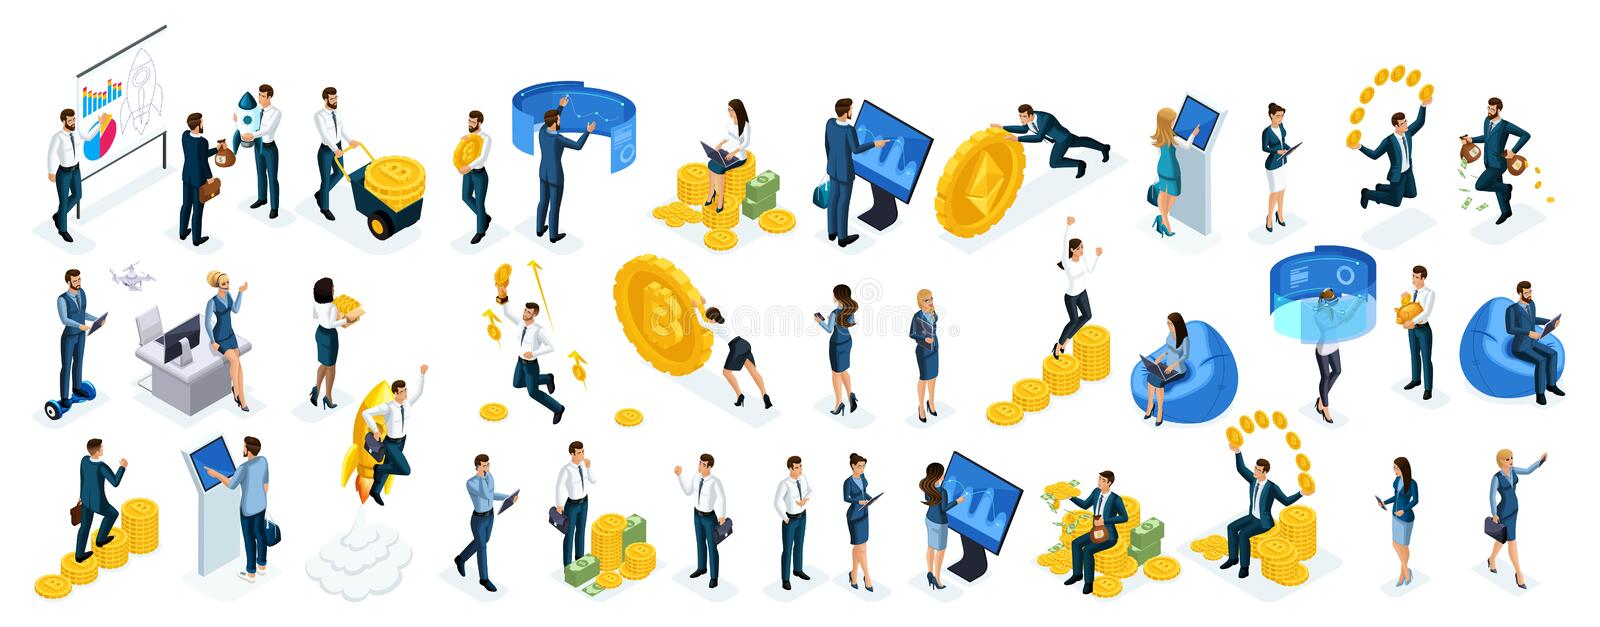 Isometric big set businessmen and business ladies use virtual screens to buy online crypto currency, modern technology royalty free illustration